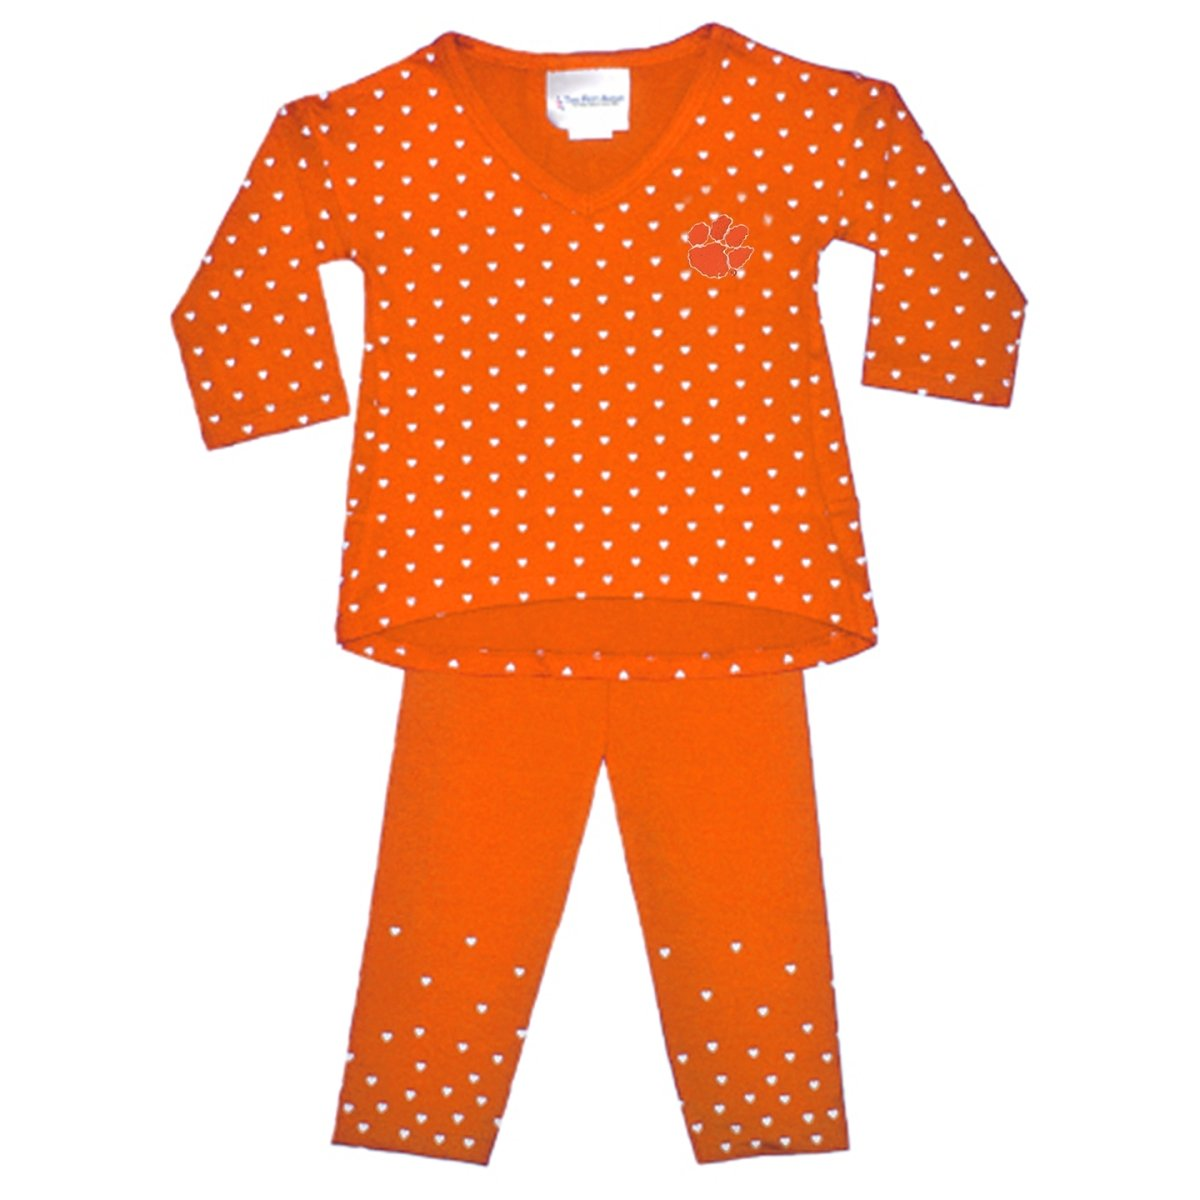 Two Feet Ahead Clemson Tigers Heart Pant Set - Mr. Knickerbocker